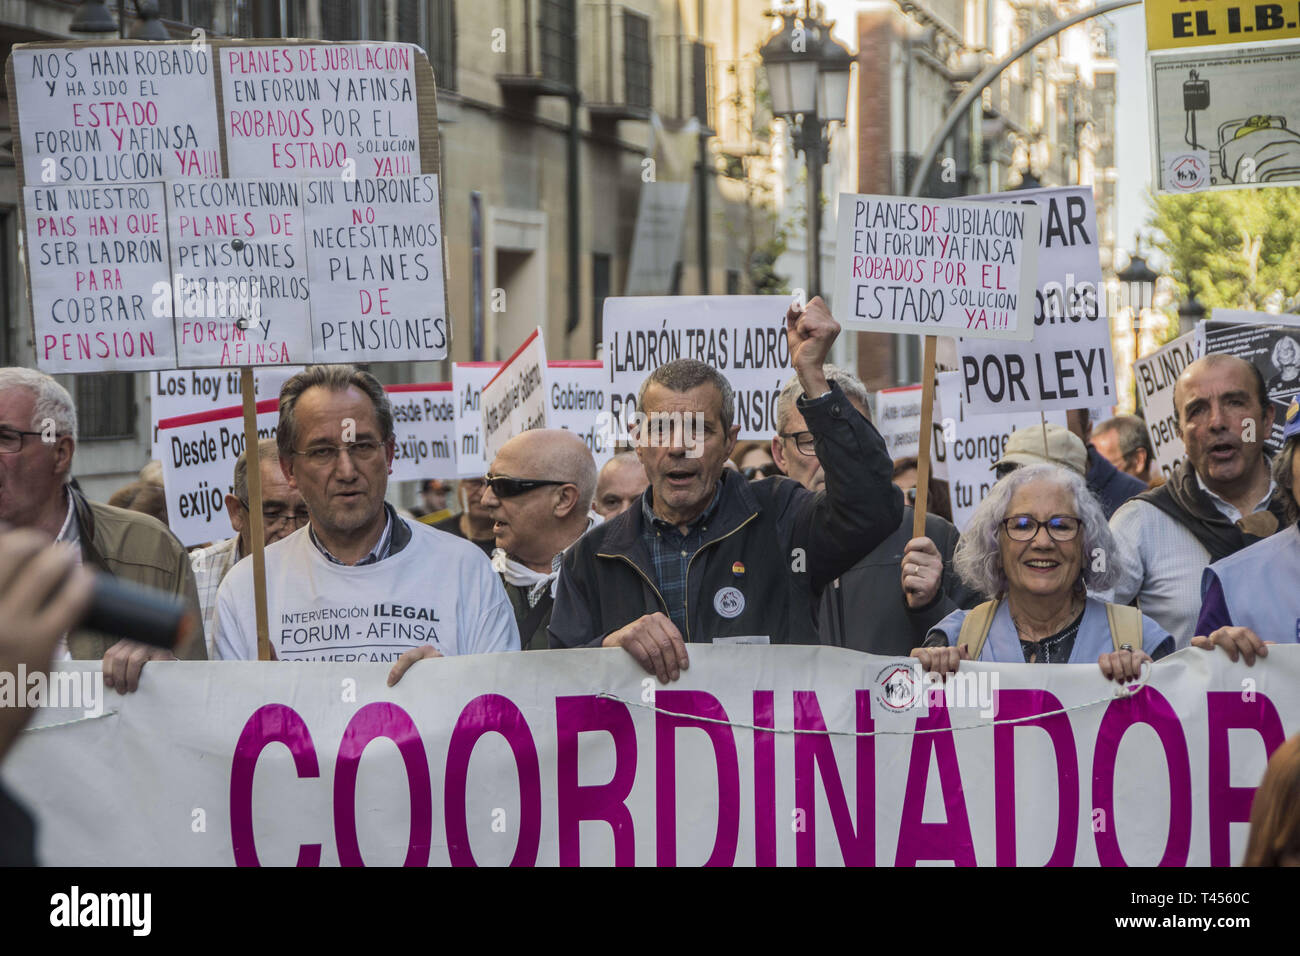 Madrid, Madrid, Spain. 13th Apr, 2019. Protesters are seen holding placards and a banner while chanting slogans during the demonstration.Demonstration to defend the systemic public pension in Madrid by the CCOO coordination of pensioners that calls on the Government to ensure the presentation in this term of an initiative to repeal the pension reform of 2013, which must be legally validated in the face of elections this month of April 2019, within the framework of broad agreements in the political and social sphere. This initiative is a prior agreement of the social partners (trade unions a Stock Photo